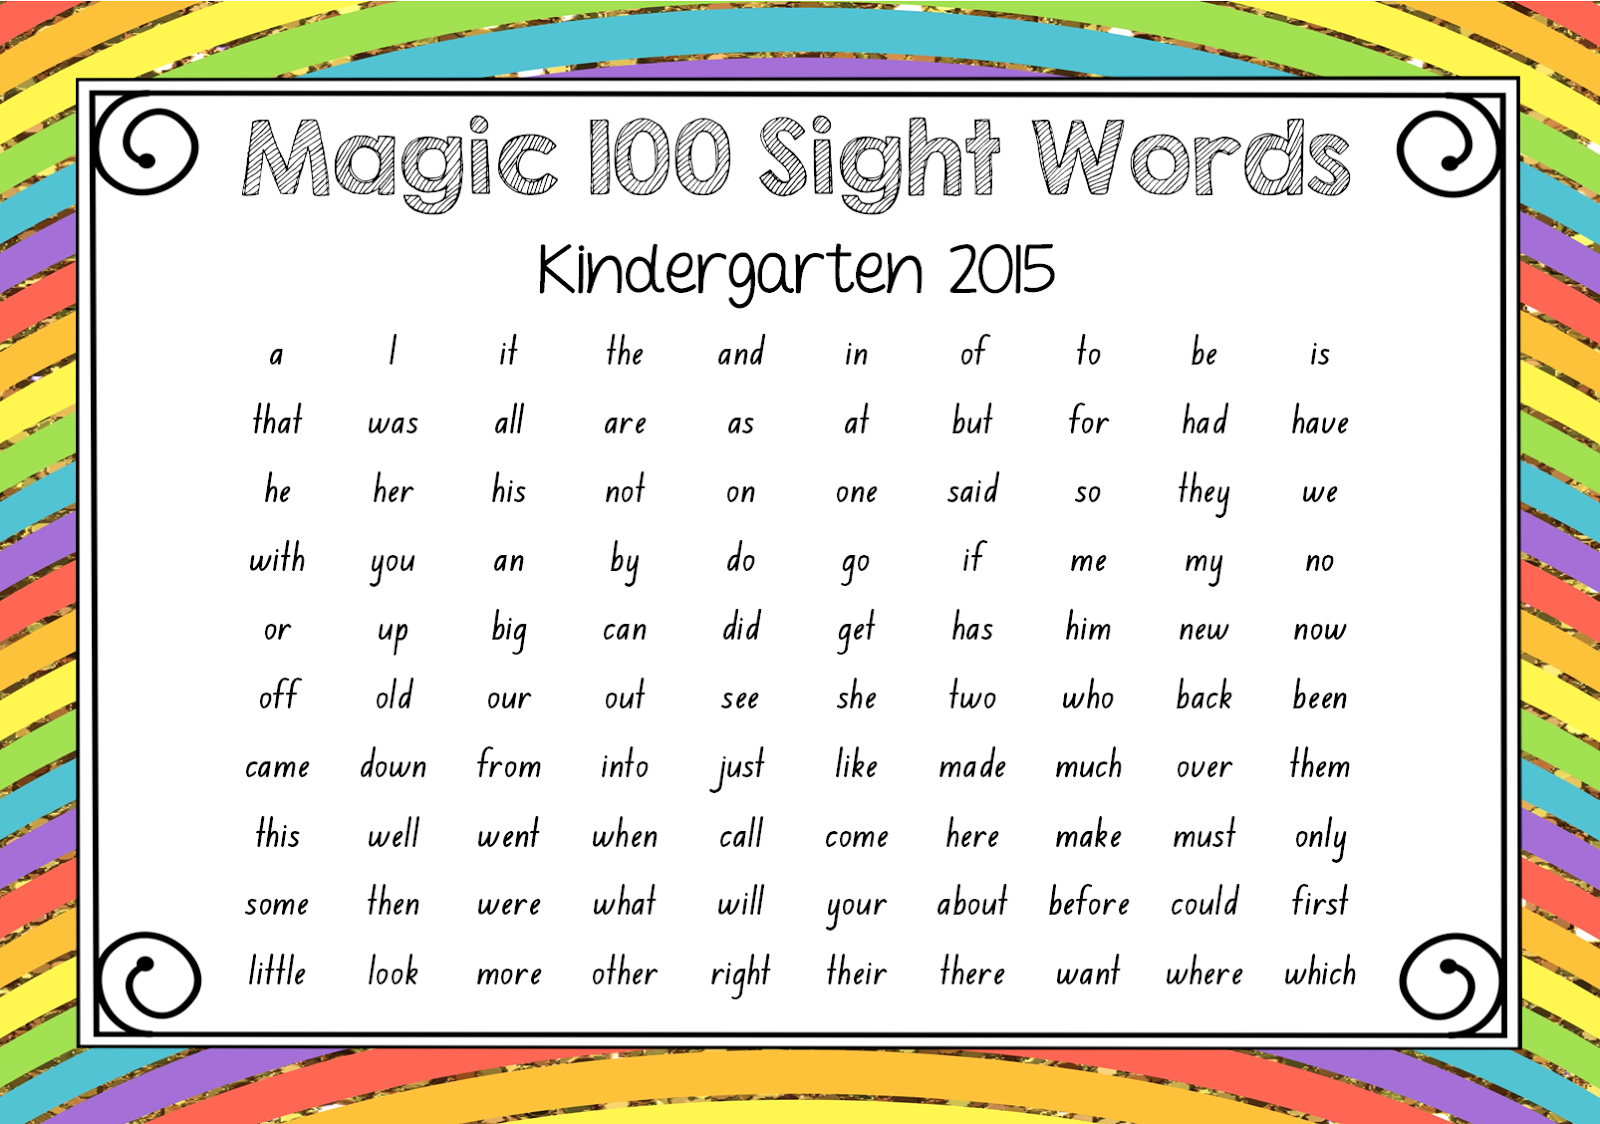 fry s 100 basic sight words This app has an audio option that pronounces words aloud and is based on the popular fry's sight words  100 words comprise  learn elementary sight words acez.